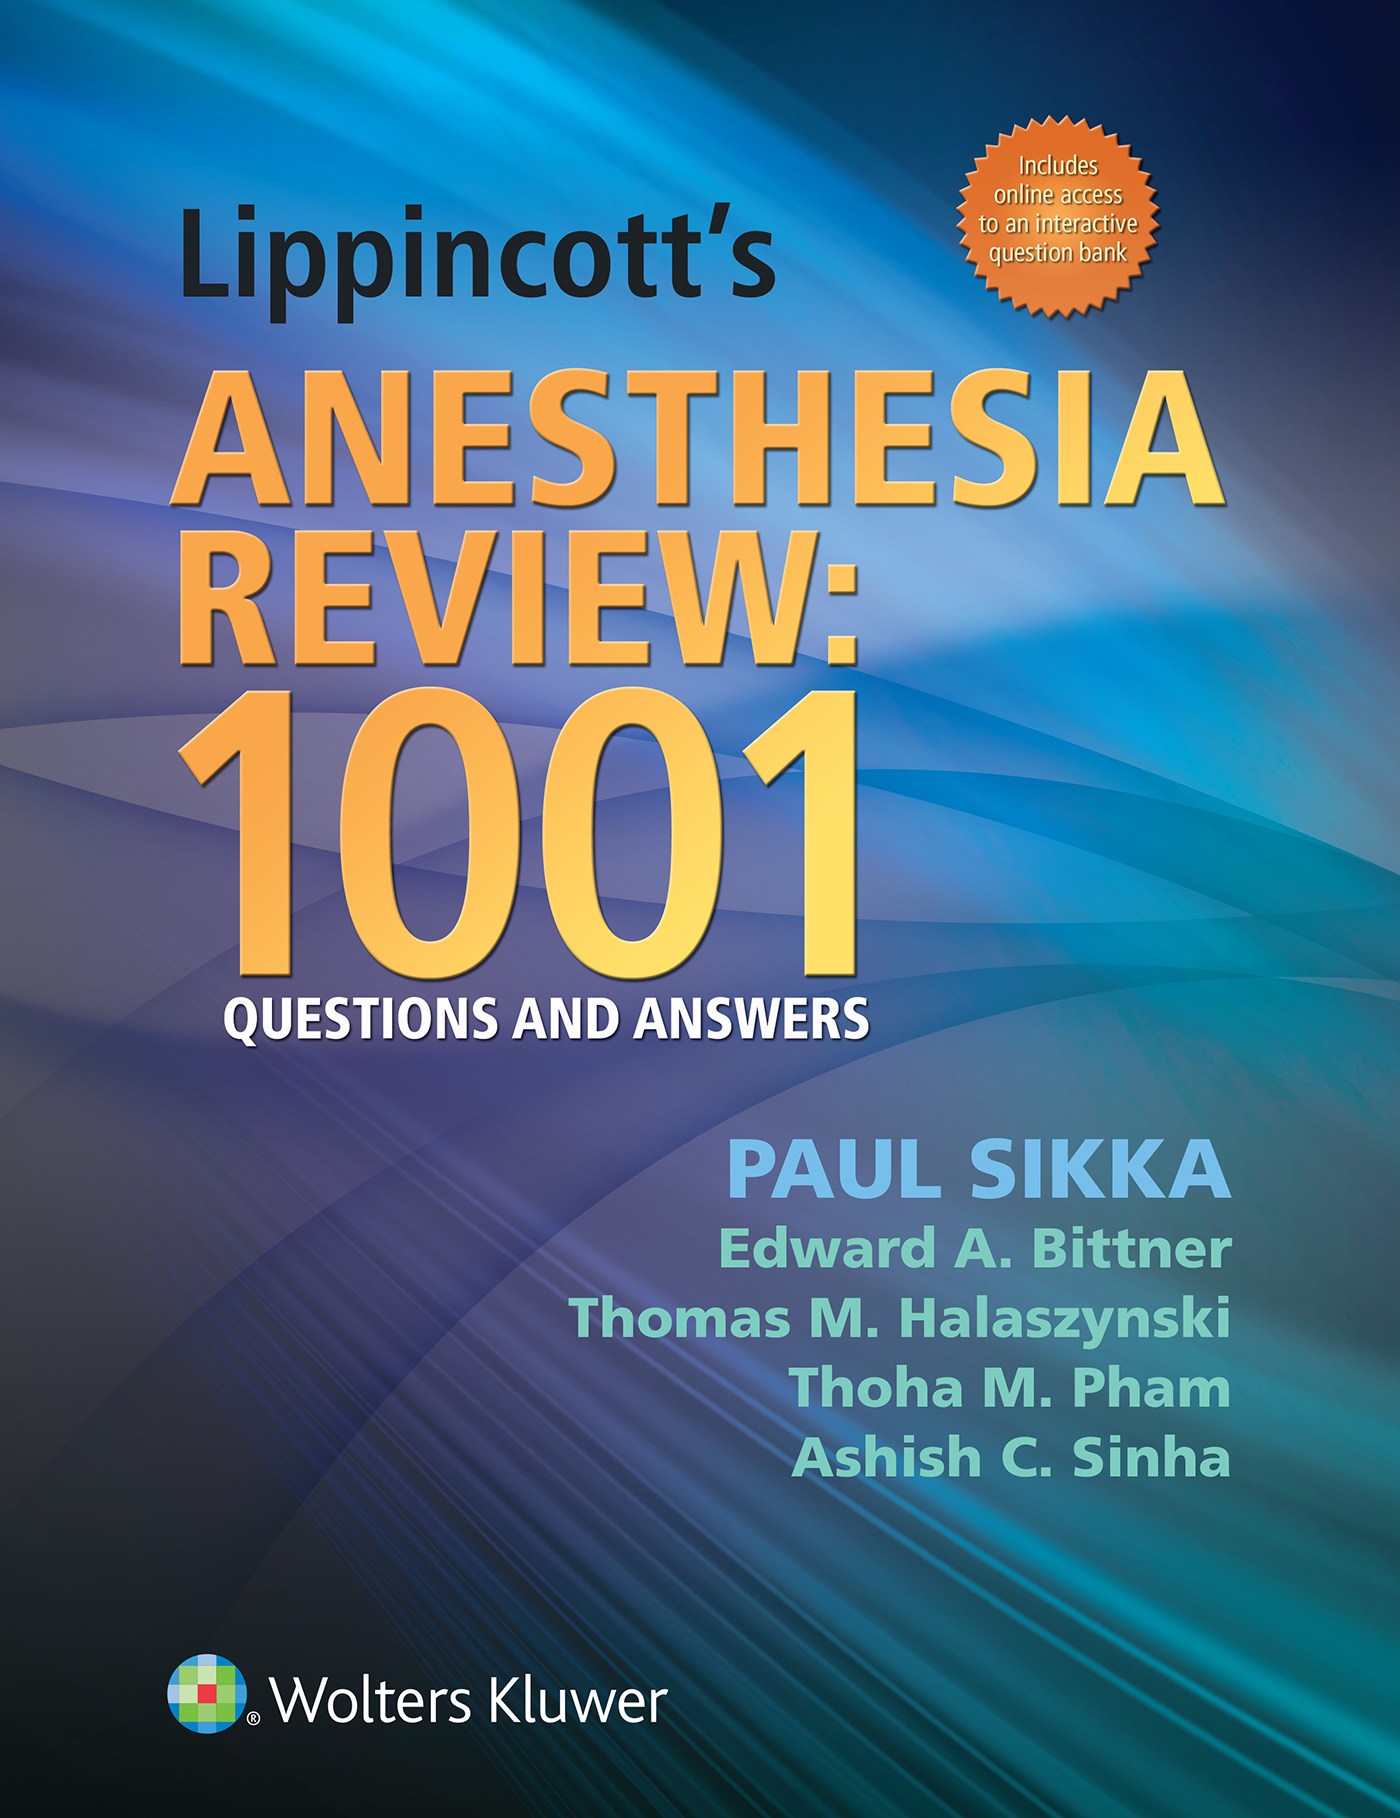 lippincott s anesthesia review 1001 questions and answers